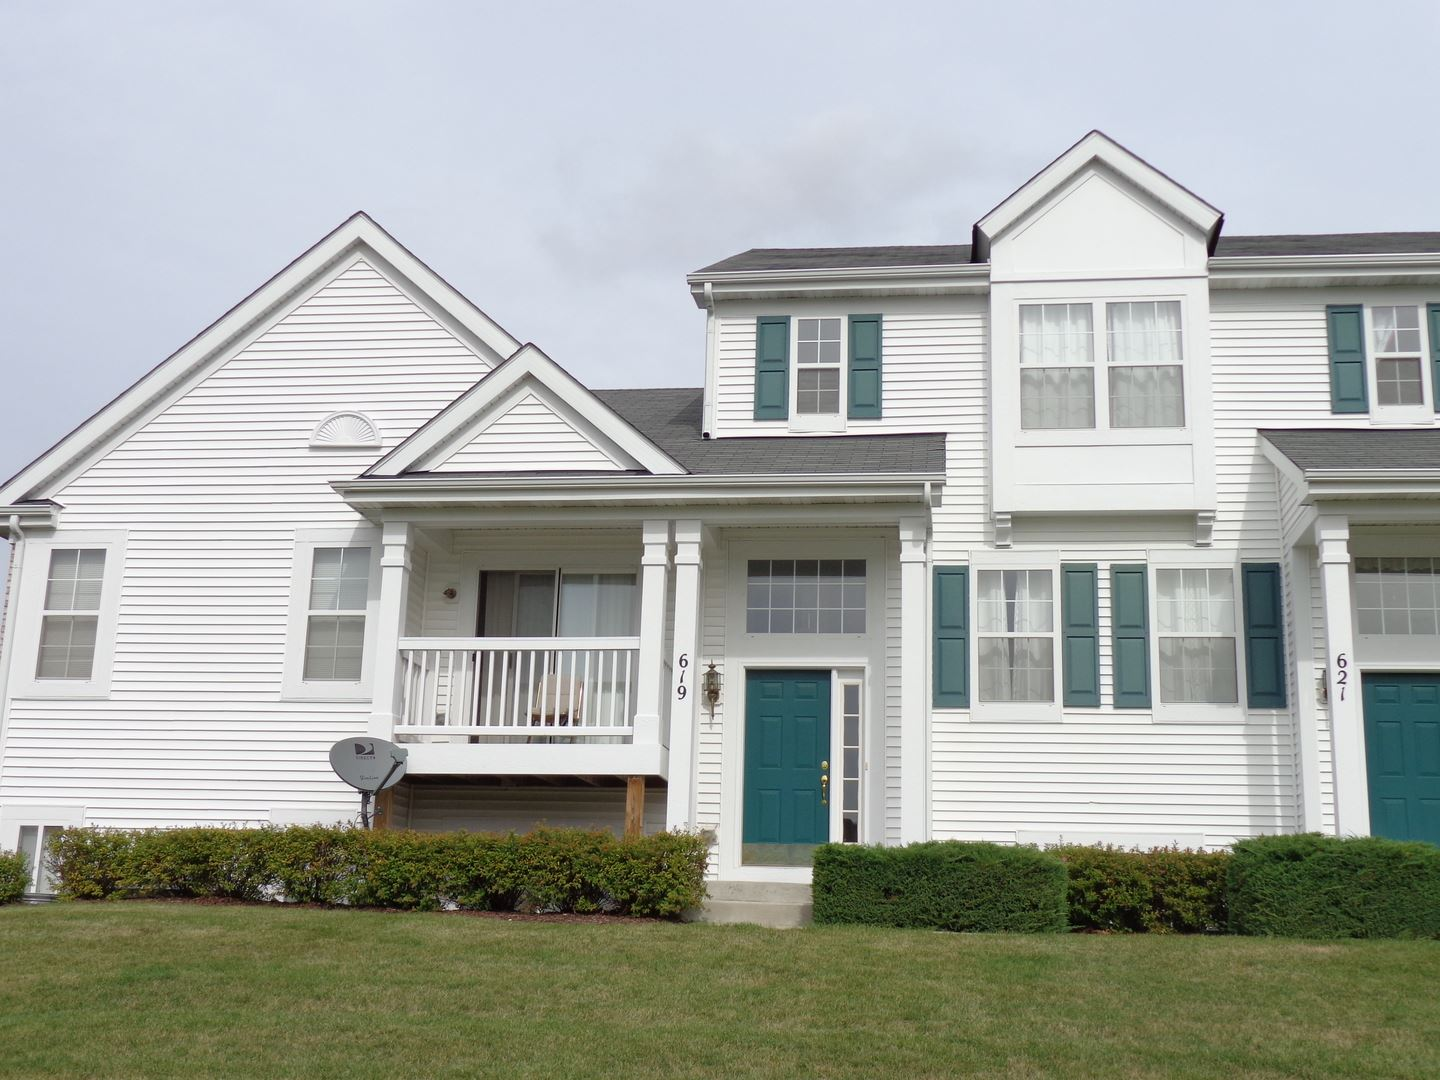 Photo of 619 Lincoln Station Drive #619, Oswego, IL 60543 (MLS # 11043832)